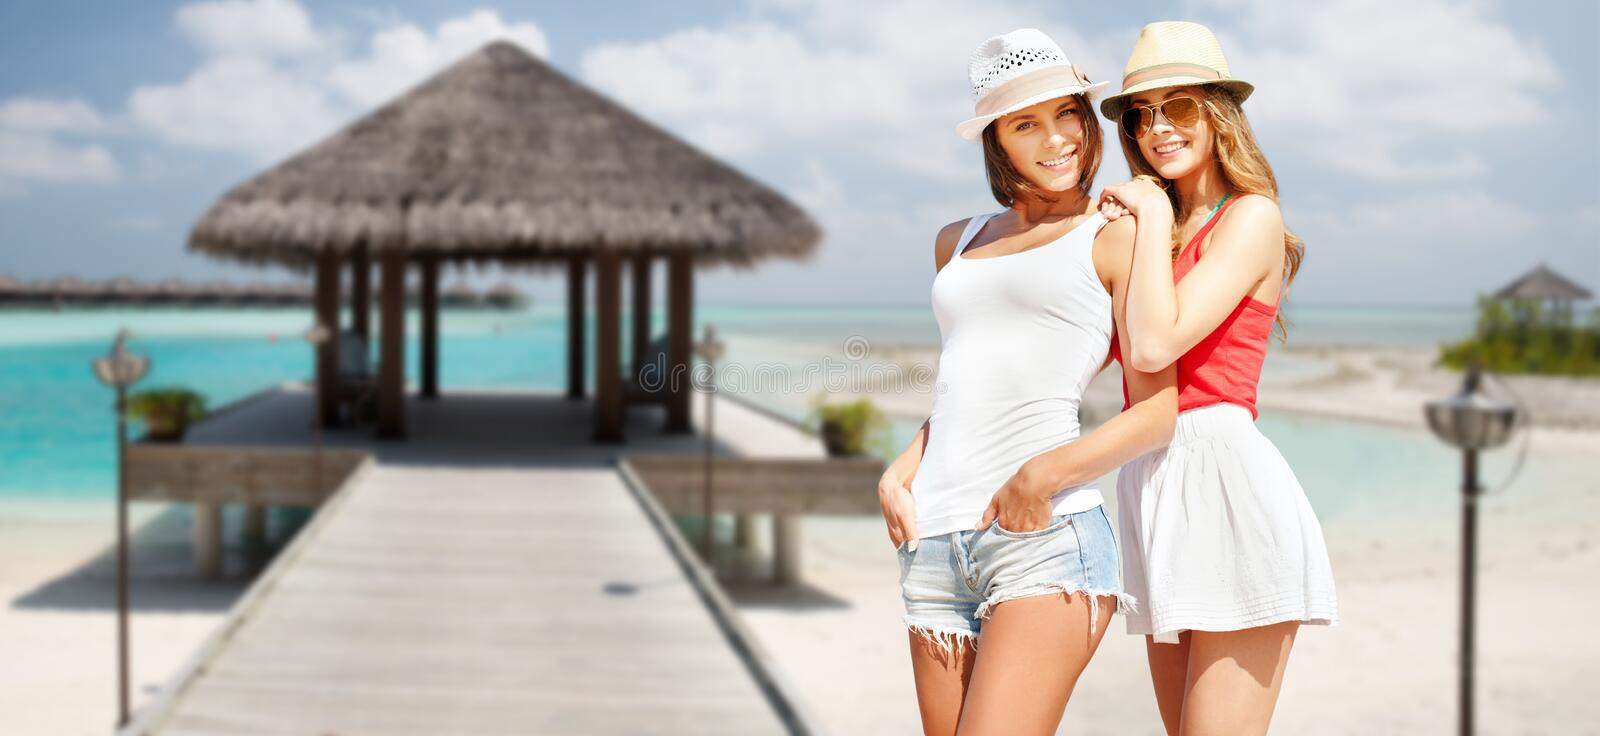 Smiling young women in hats on beach stock image